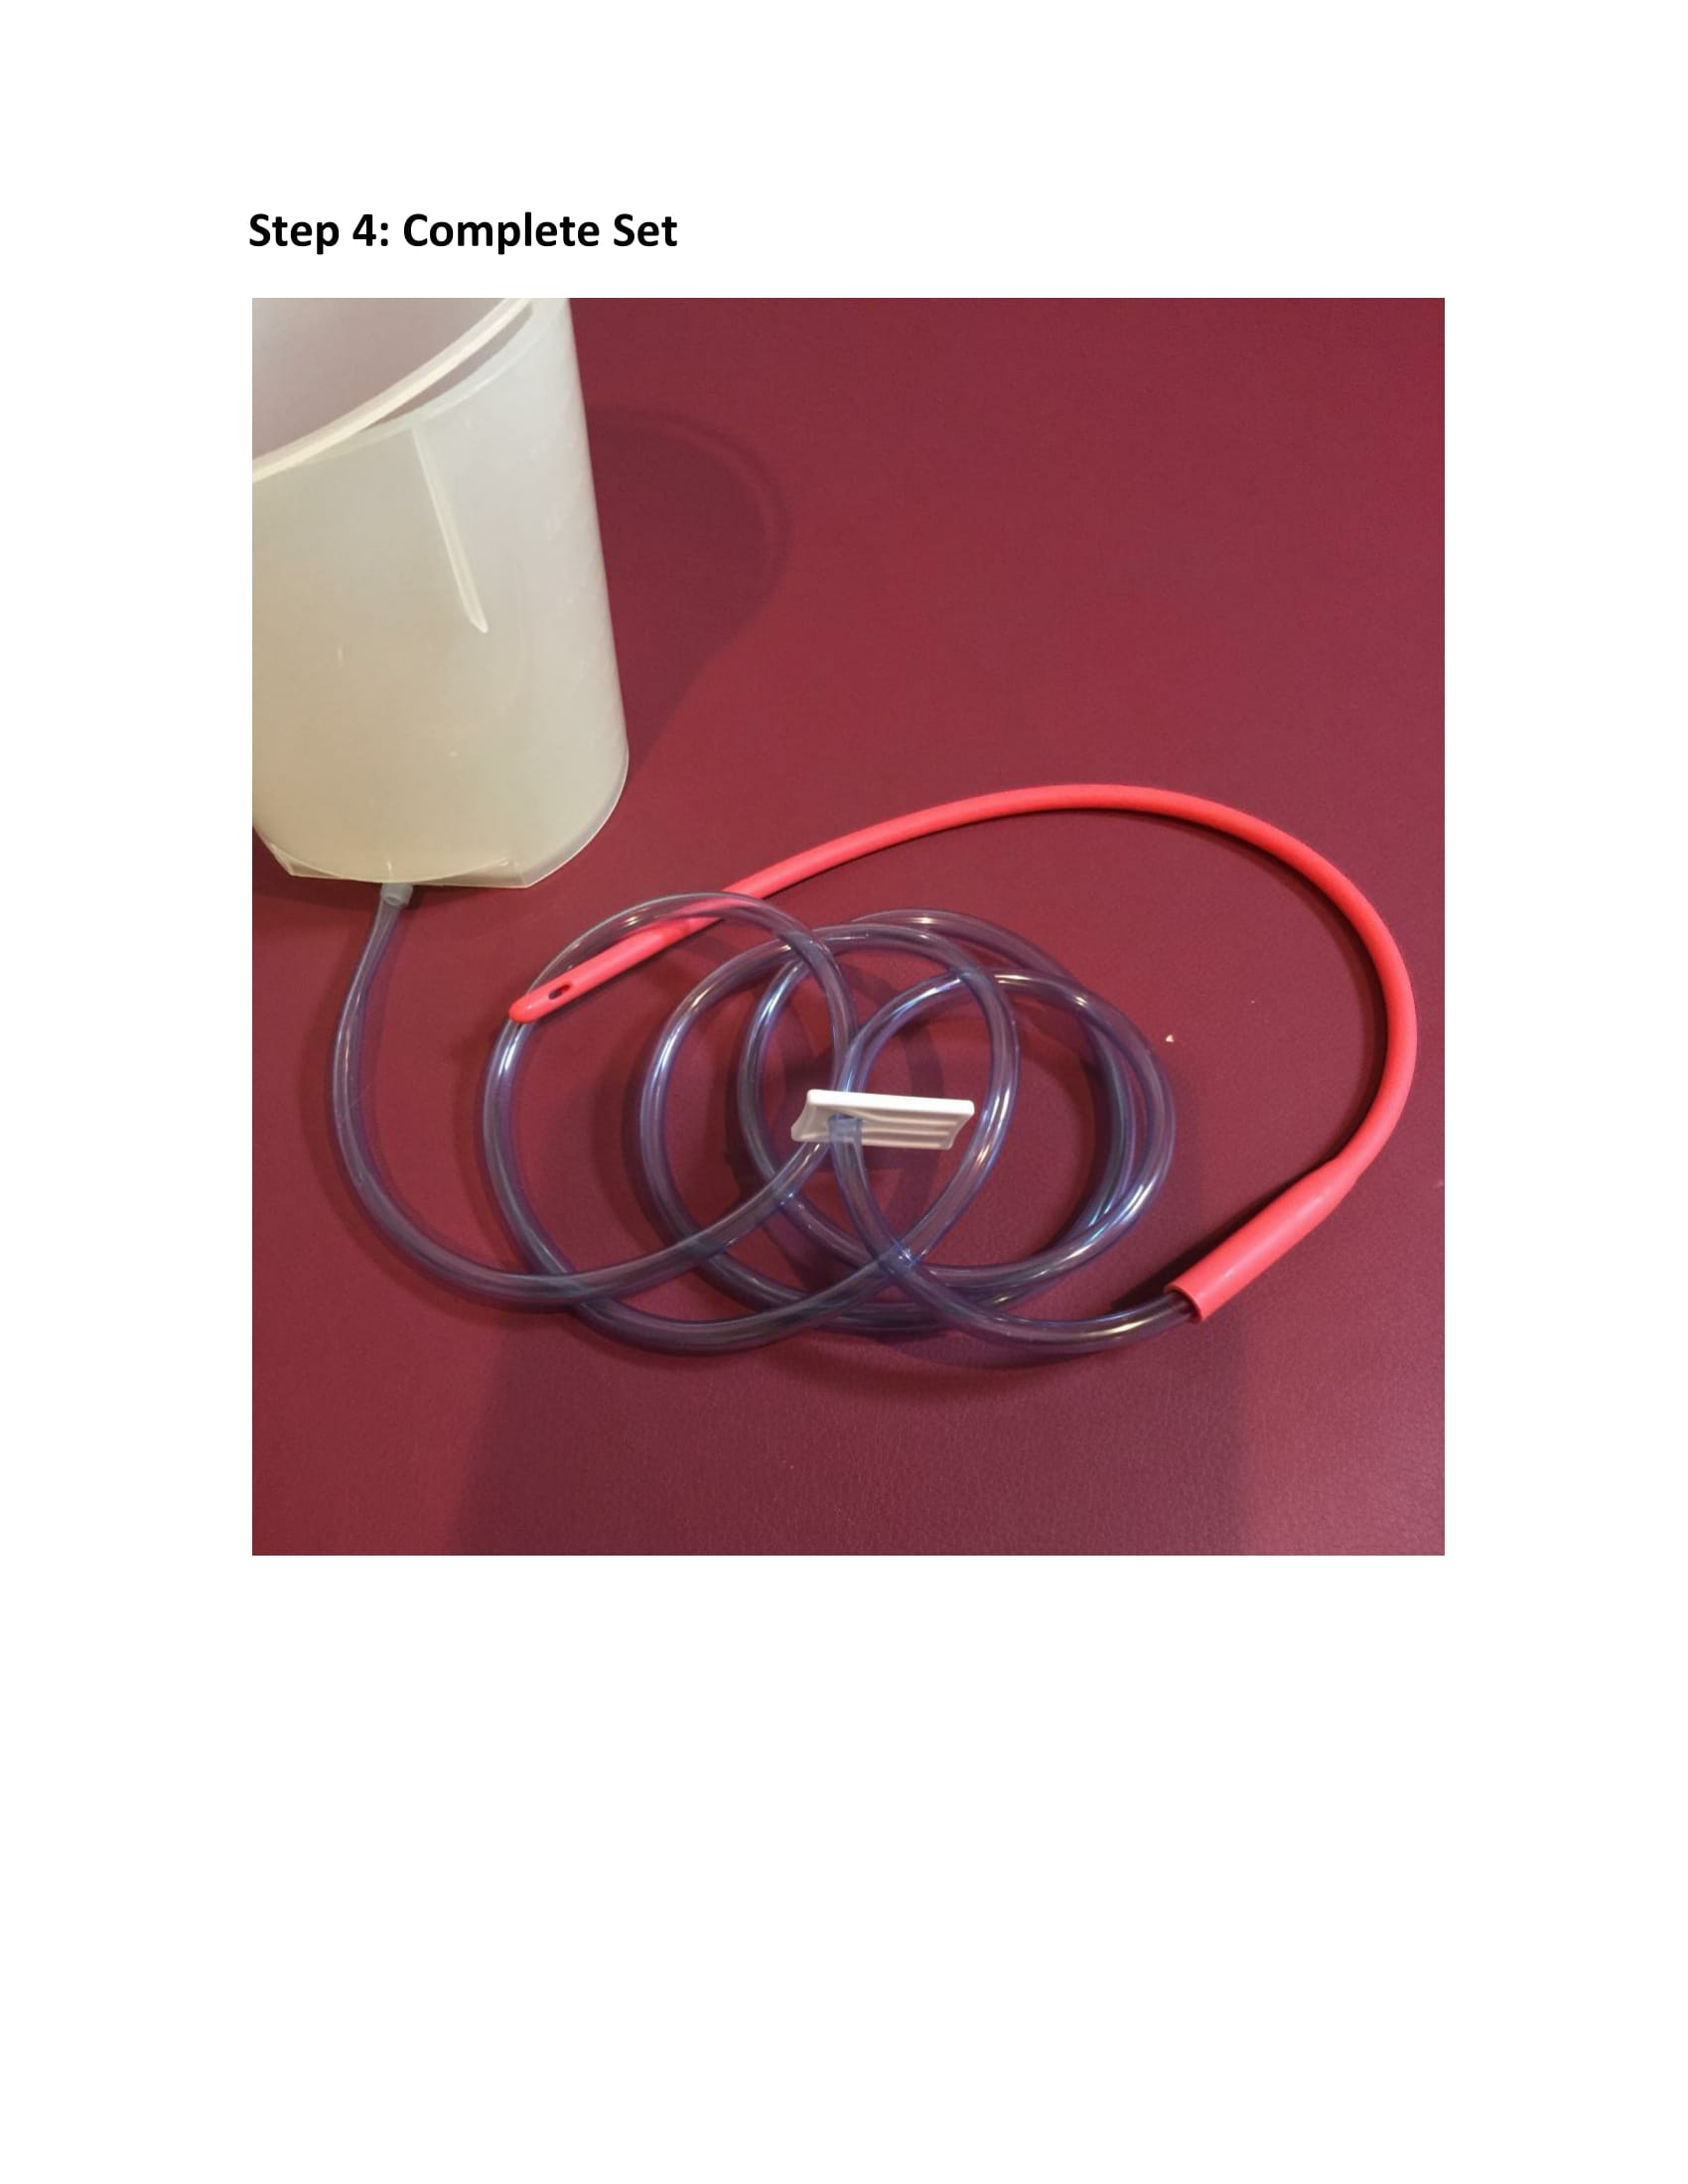 final-connecting-tube-to-bucket-5.jpg